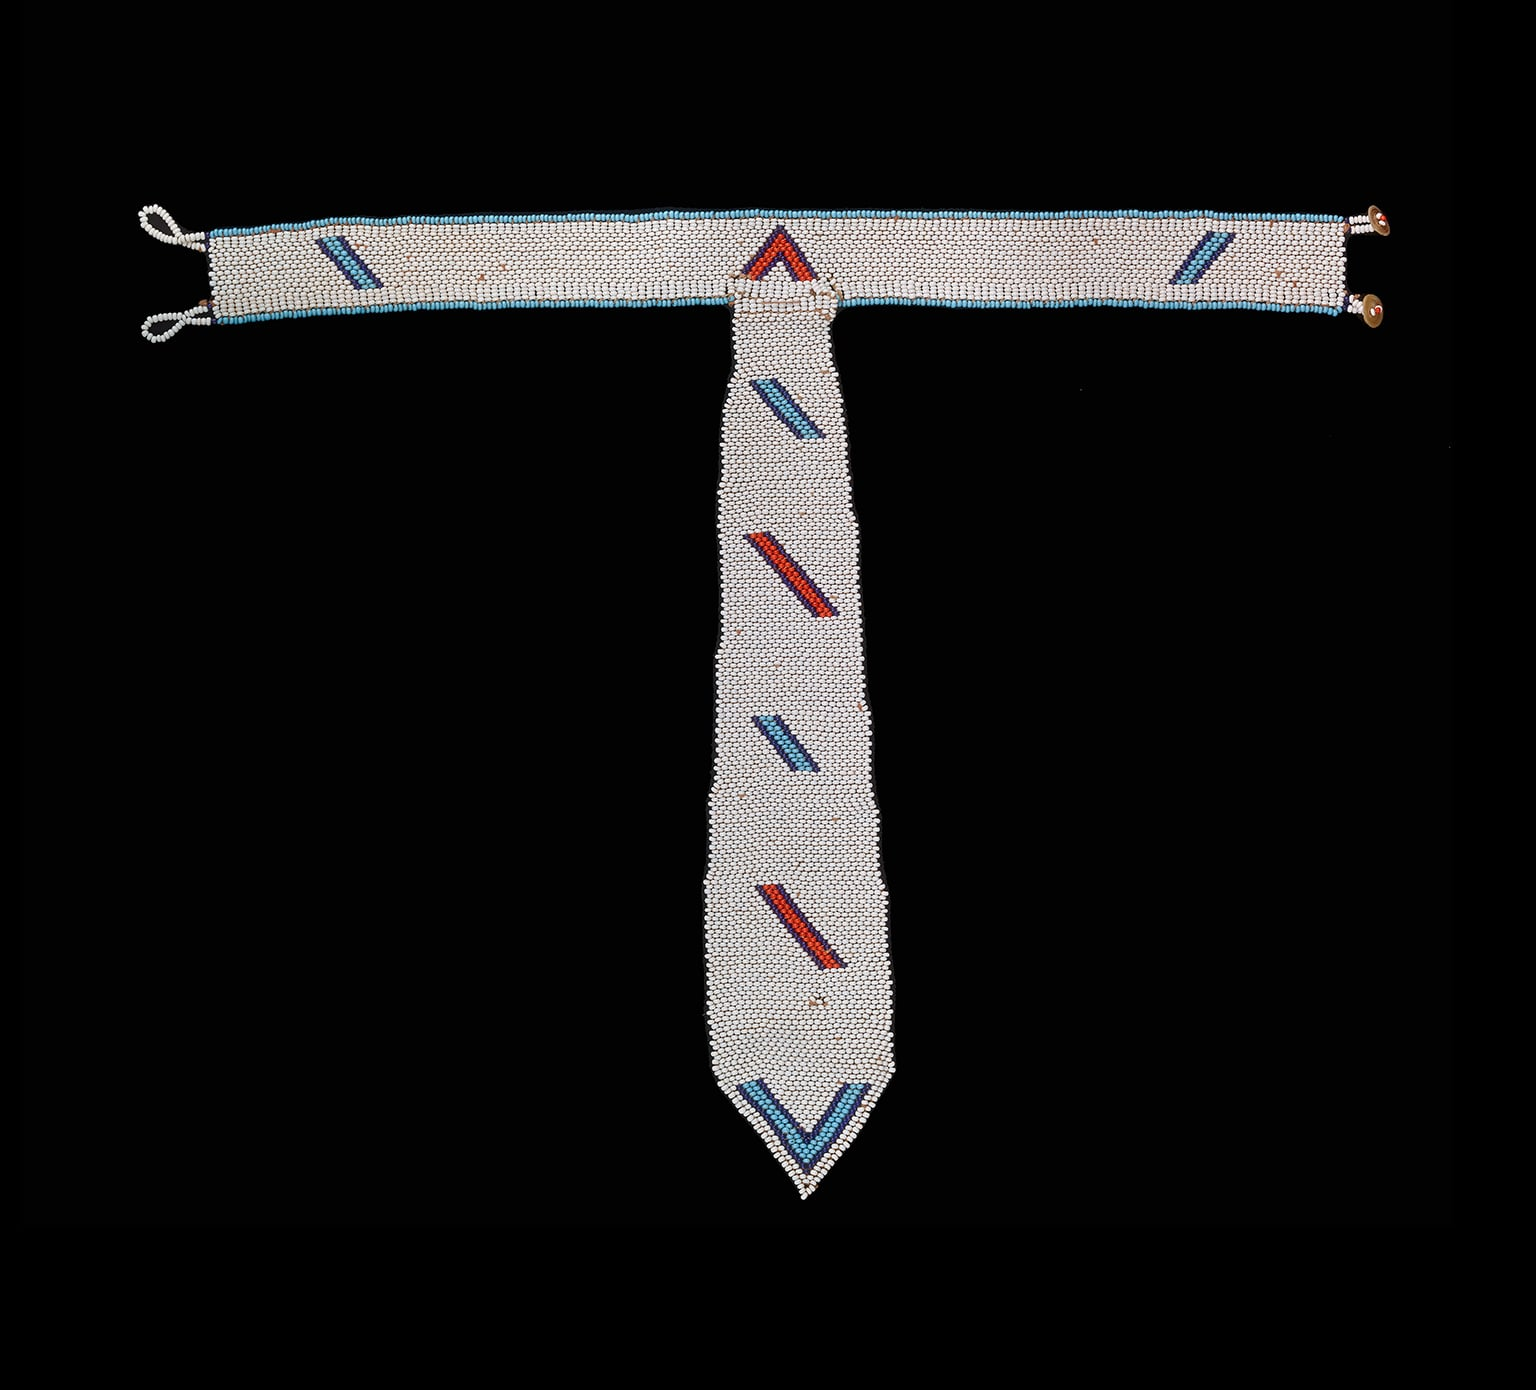 Tie, acquired in Idutywa, South Africa. Xhosa made, 1900-70